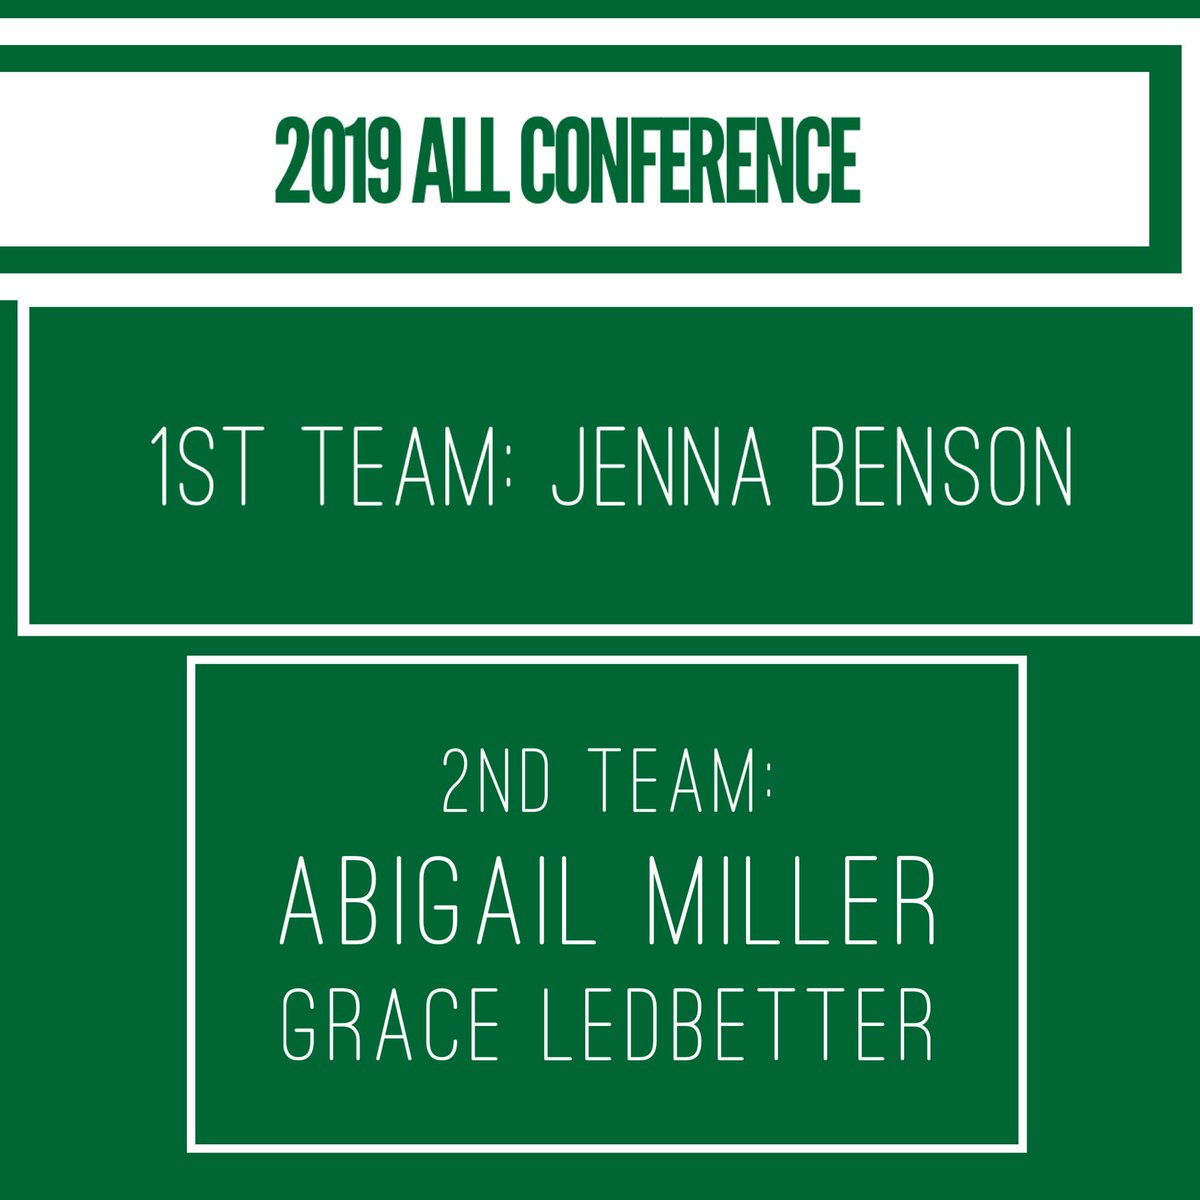 Congratulations to our 2019 1st and 2nd team All Conference selections! #wearemehlville